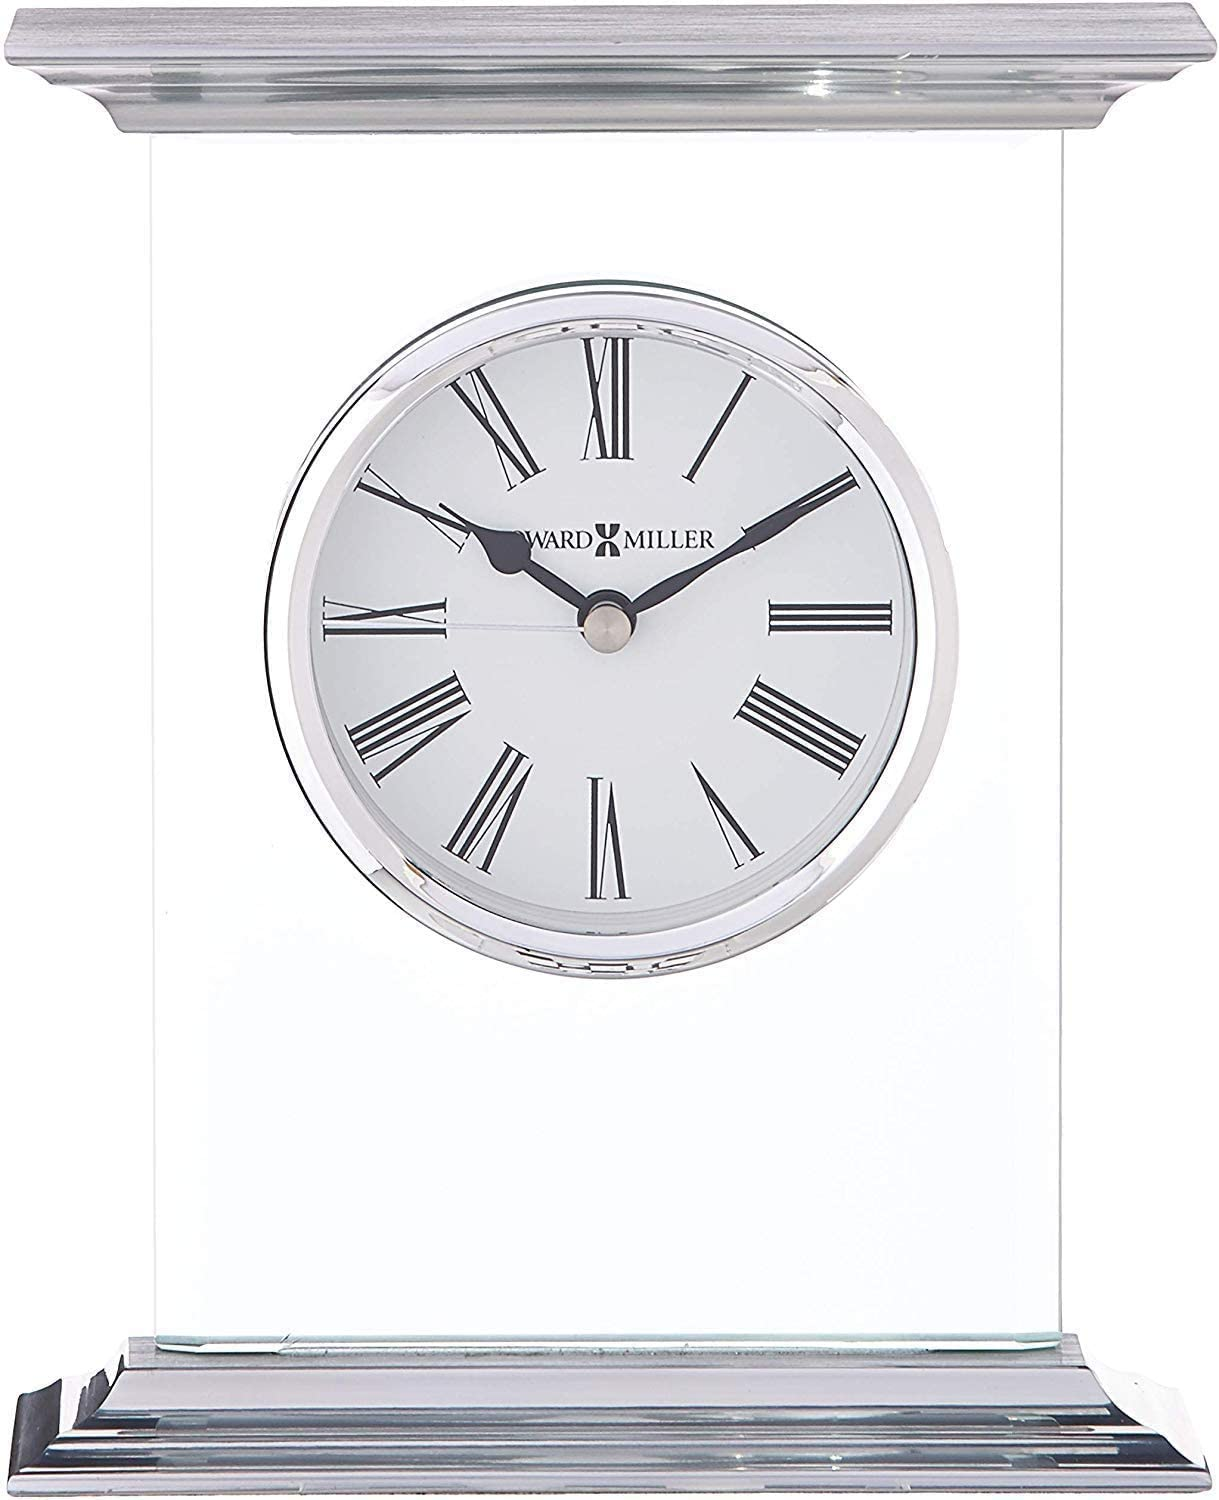 Howard Miller modern glass tabletop clock